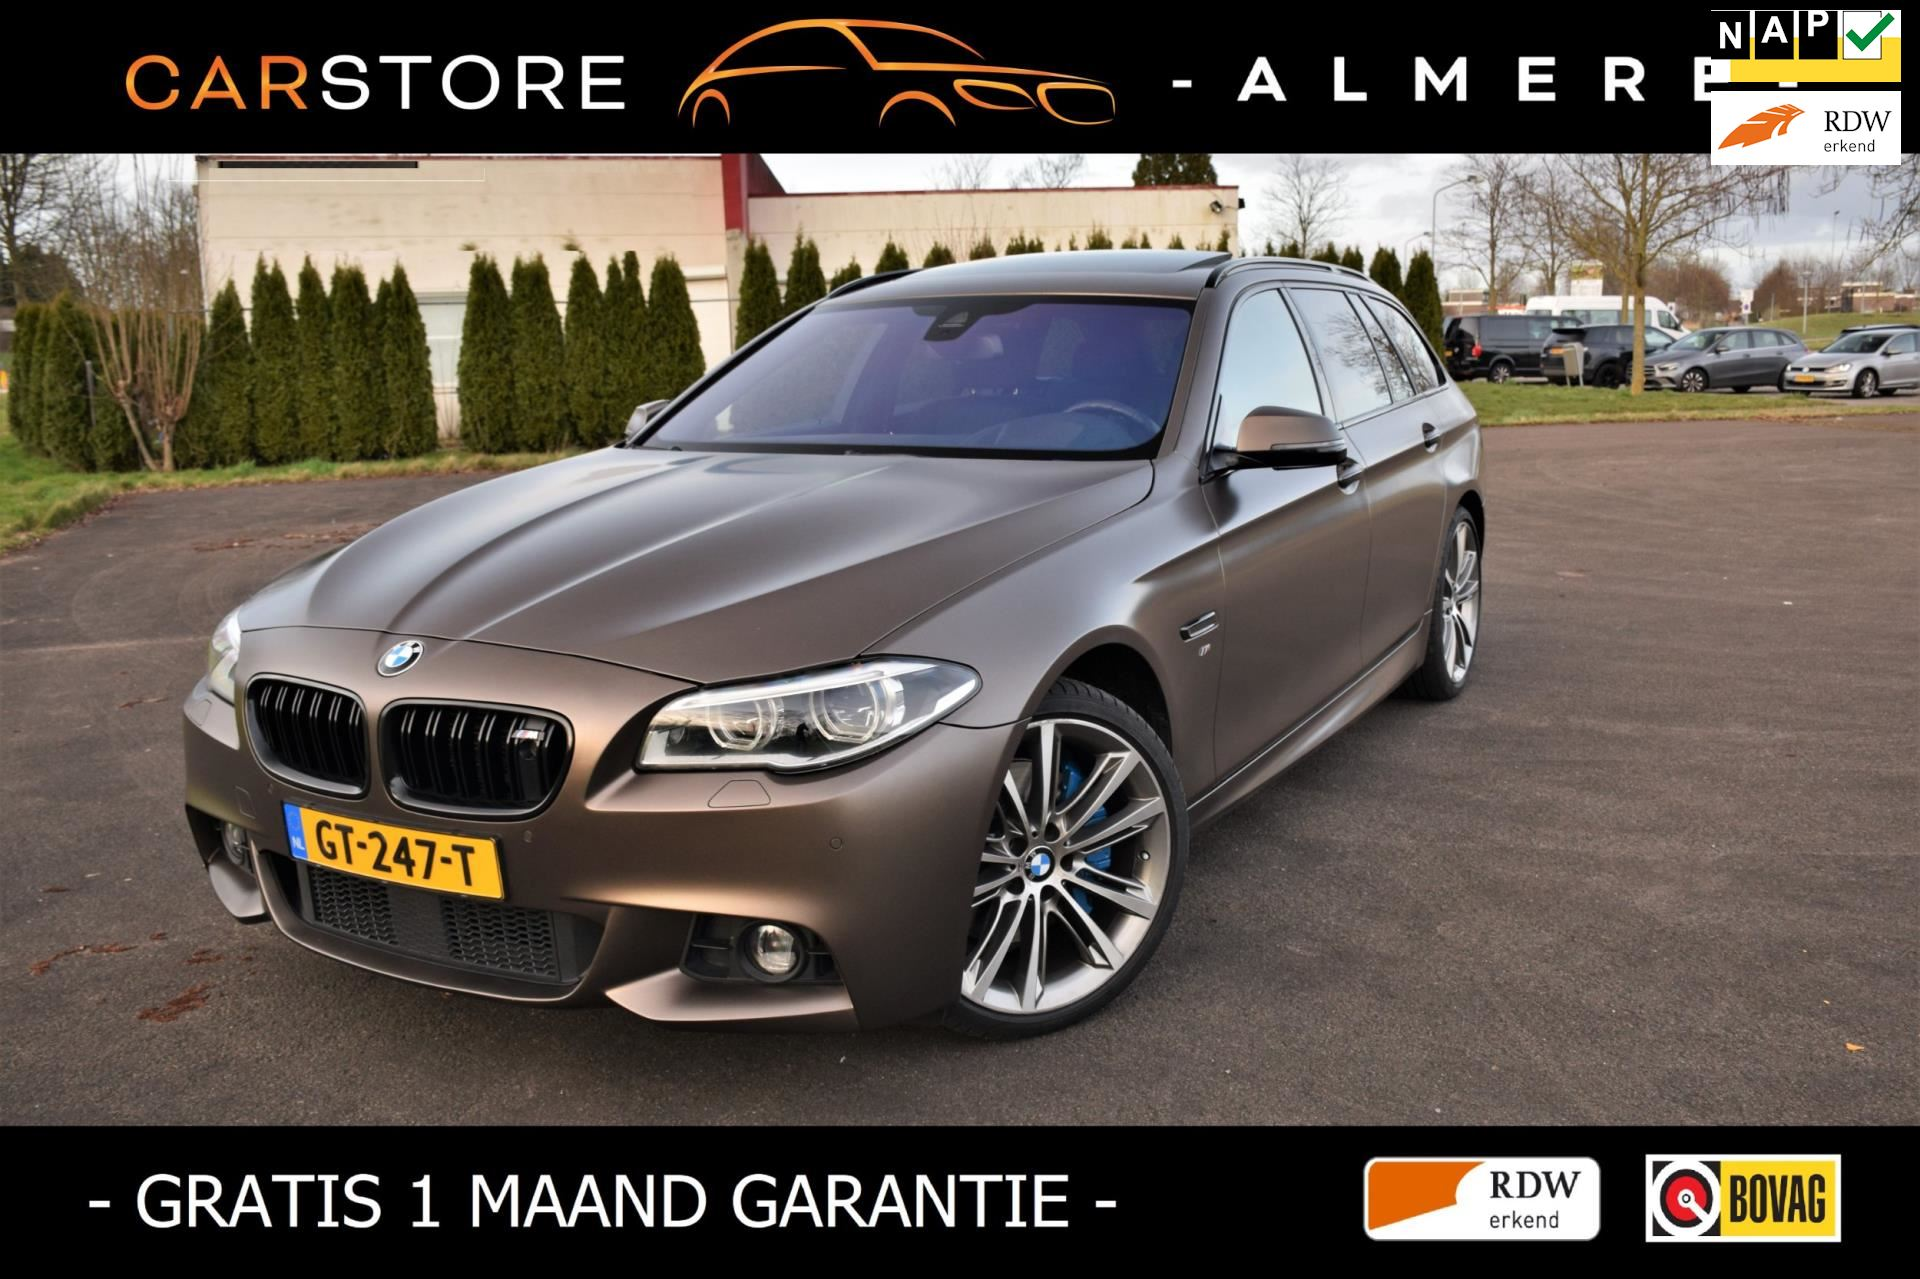 BMW 5-serie Touring occasion - Used Car Store Almere